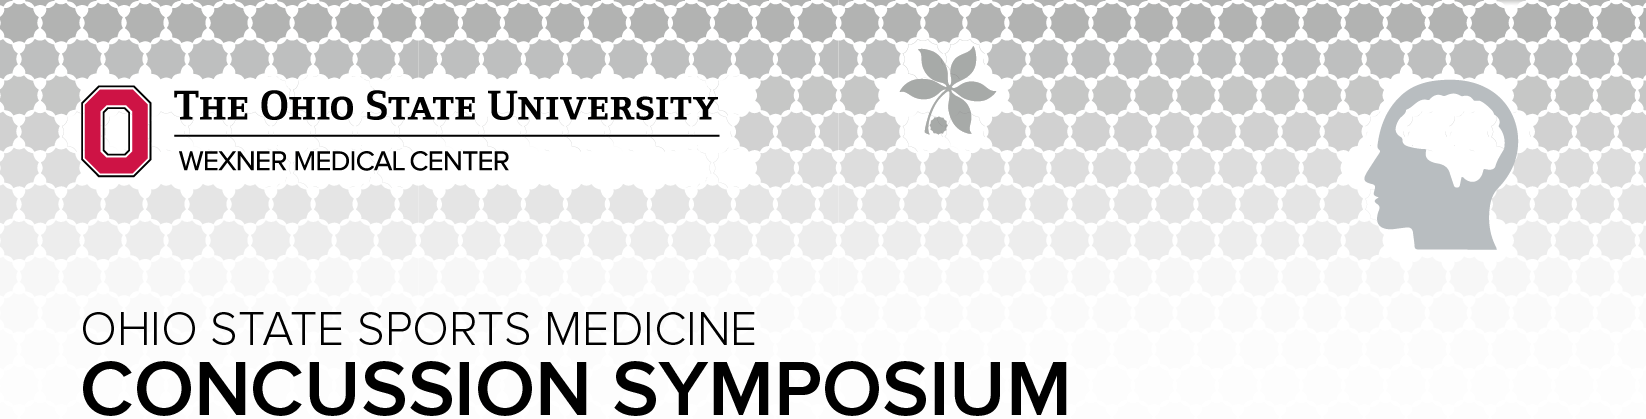 Ohio State Sports Medicine 2018 Concussion Symposium